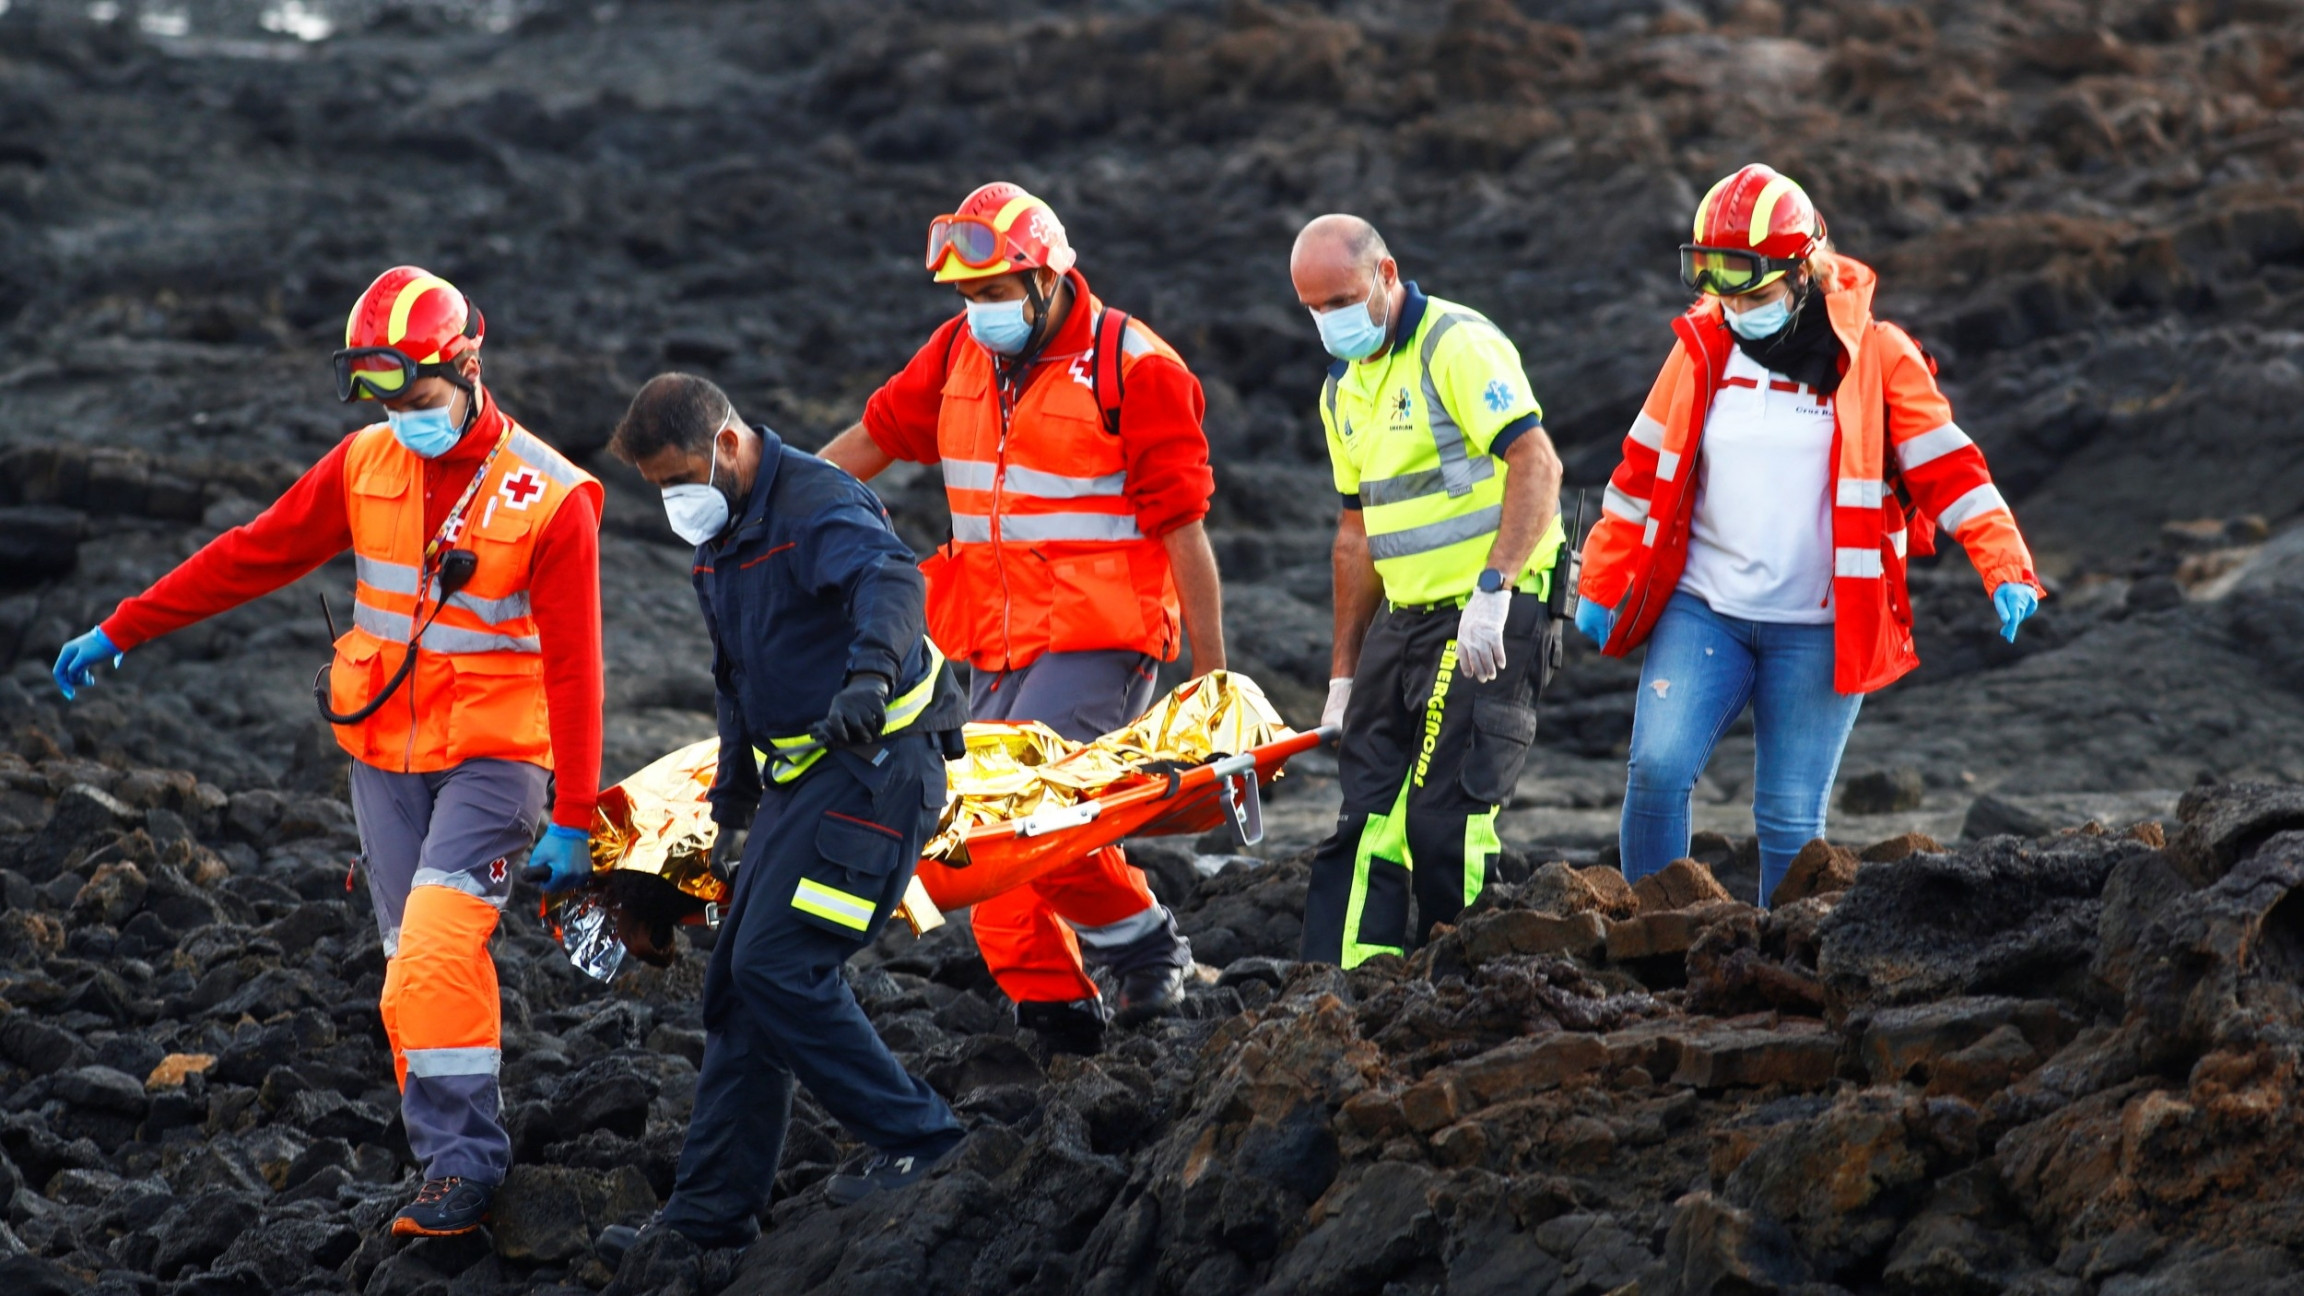 Rescue workers carry the body of a dead migrant after a boat with 35 migrants from the Maghreb region capsized at the beach of Orzola, in the Canary Island of Lanzarote, Spain, Nov. 25, 2020.